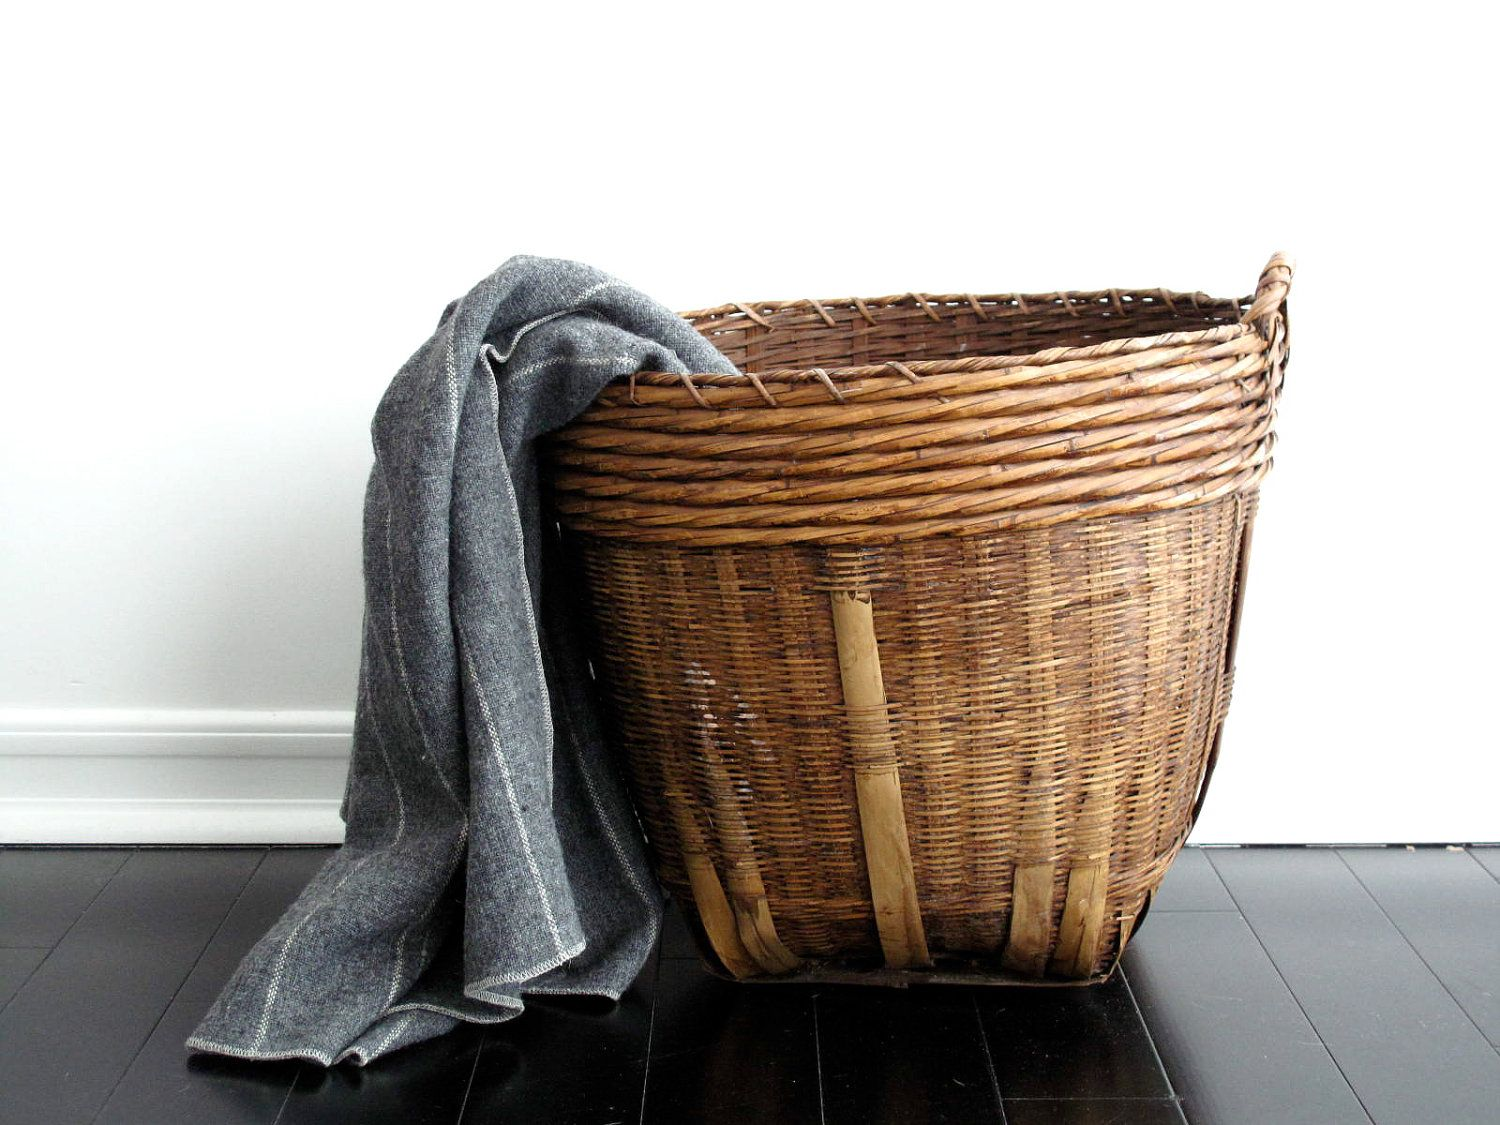 For Extra Blankets Large Woven Basket Vintage With Handles By Snapshotvintage